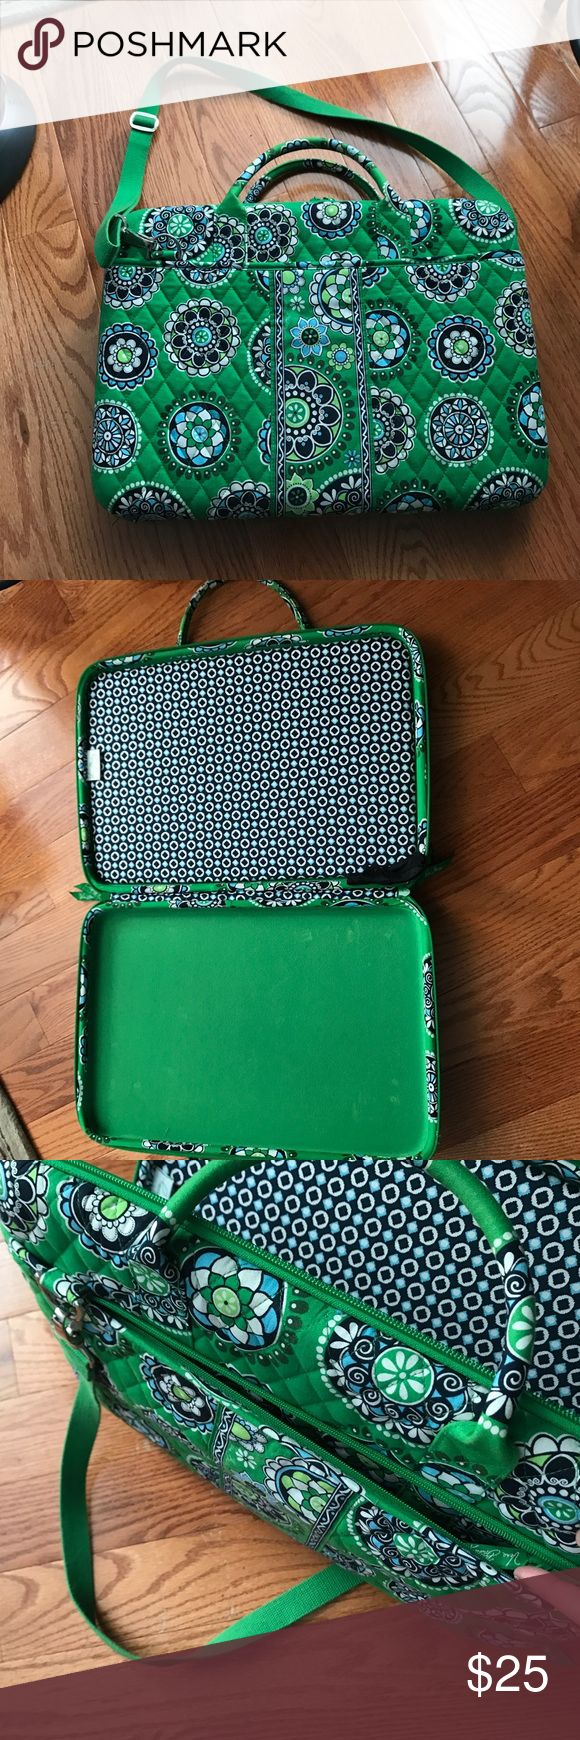 """Vera Bradley Laptop case Green Vera Bradley laptop case. Great condition. Handle strap & adjustable shoulder strap! Two side pockets on the outside. Fits 15"""" laptop and smaller. Willing to negotiate the price :) Vera Bradley Bags Laptop Bags"""